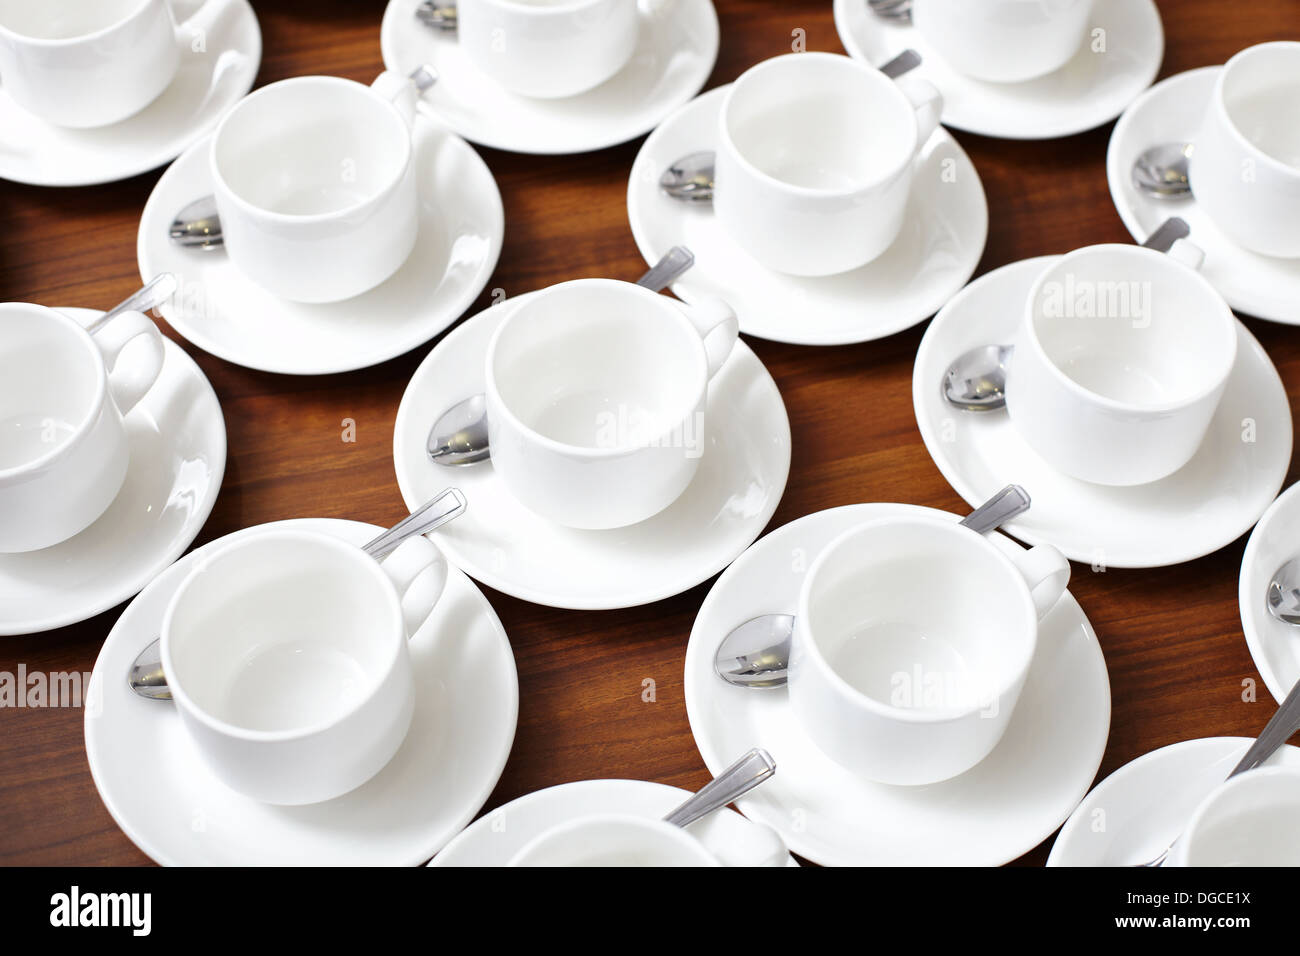 Ordered group of empty cups and saucers - Stock Image